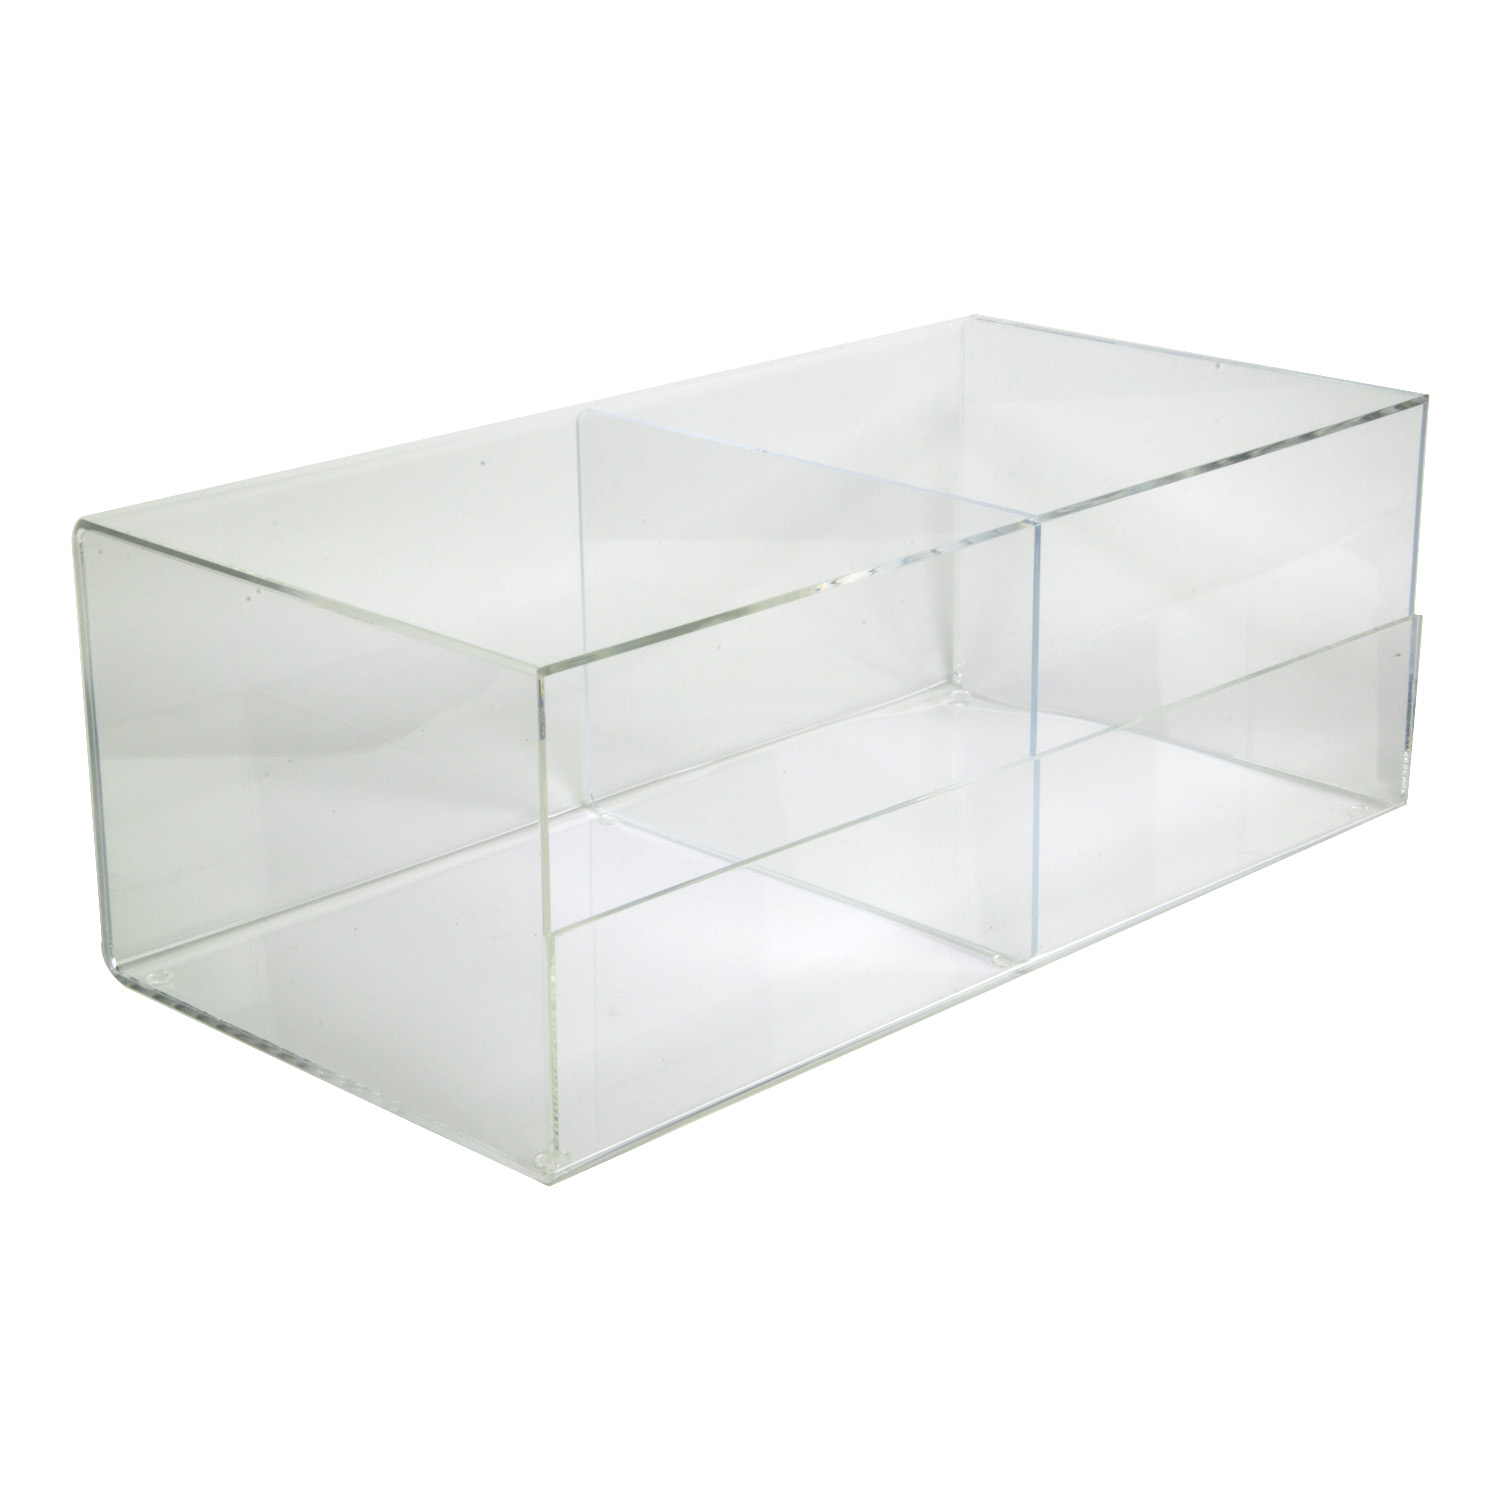 Acrylic Stackable 2 Bin Display Buy Acrylic Displays